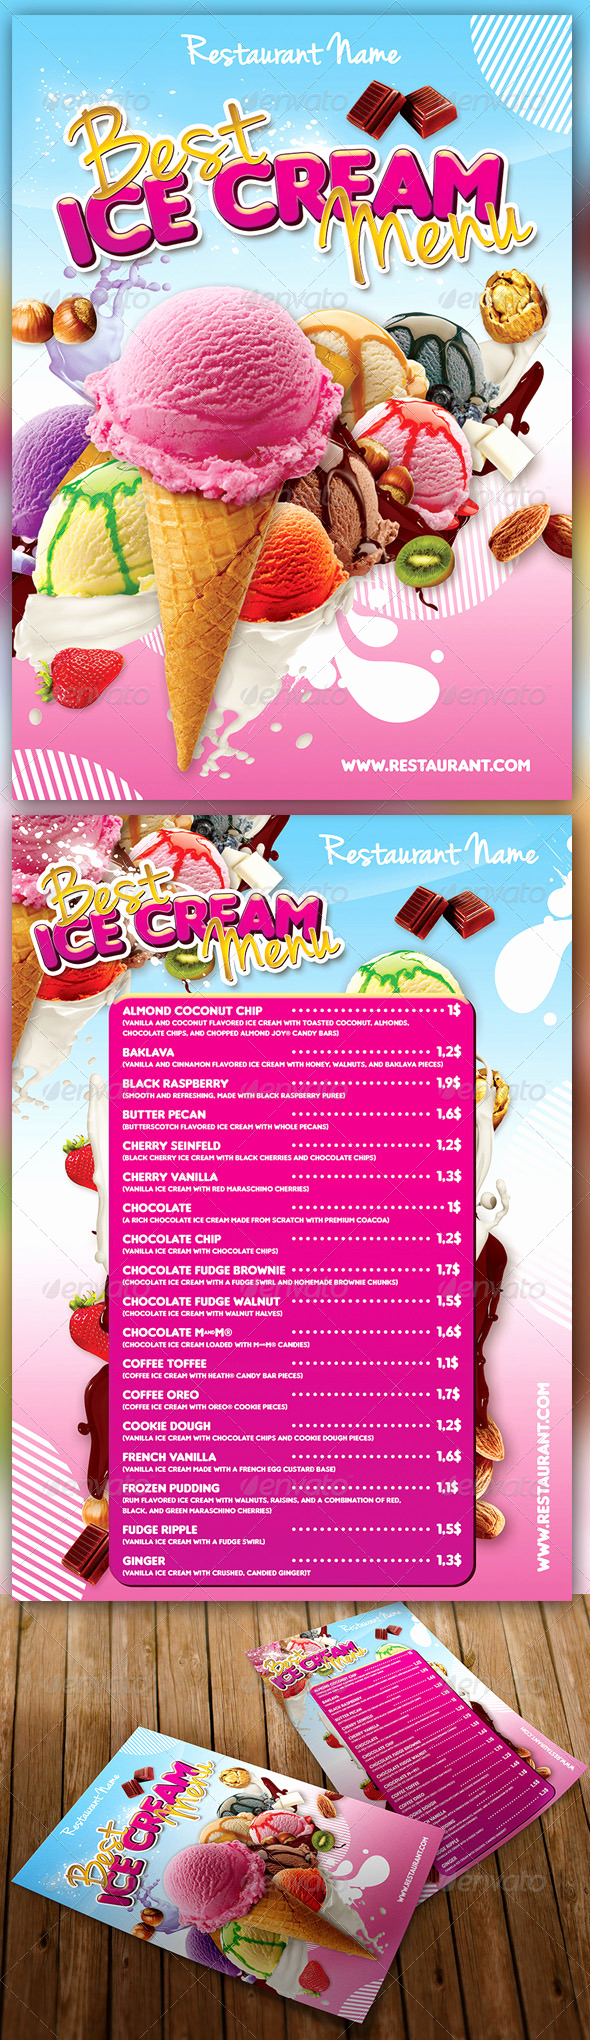 Ice Cream Menu Template Beautiful Ice Cream Menu